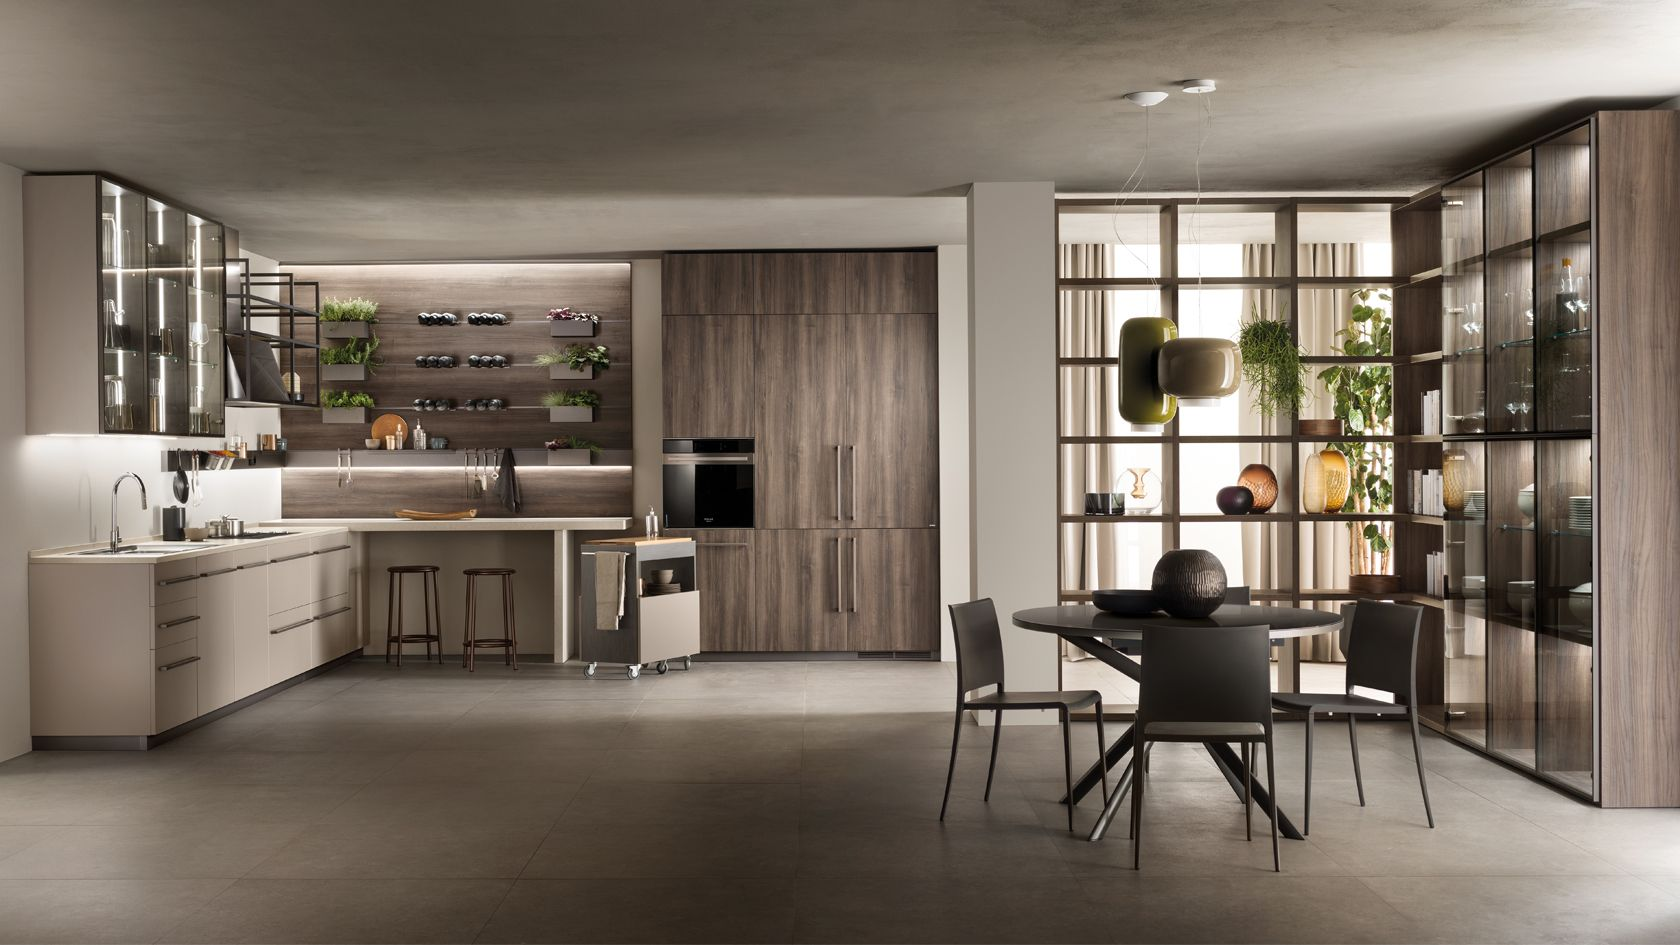 Mia Kitchen Cabinets by Carlo Cracco | Scavolini Official ...